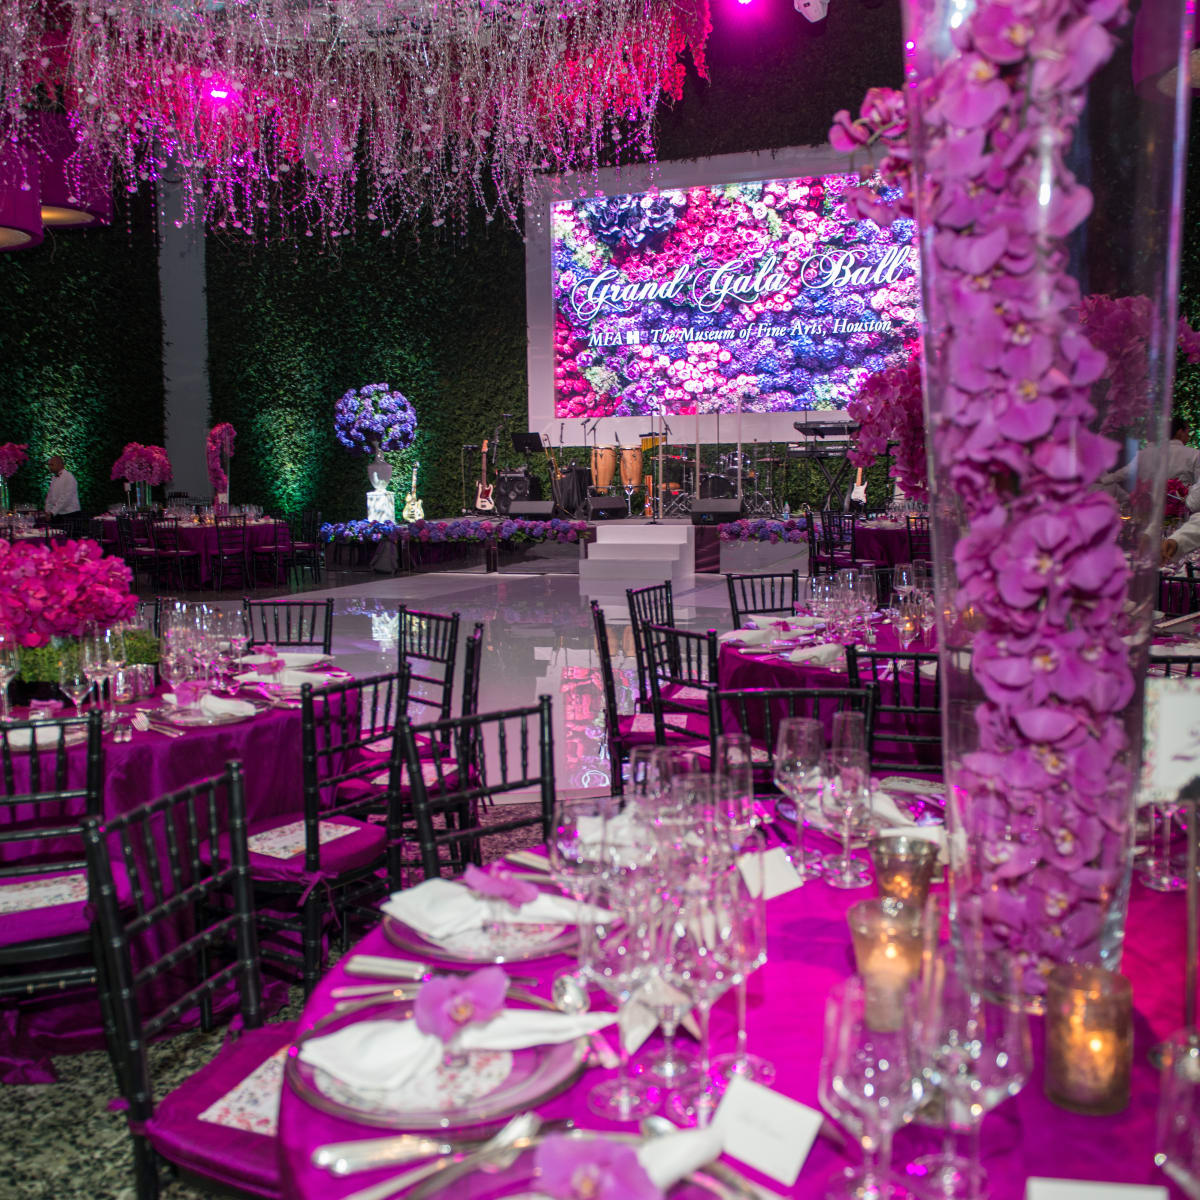 MFAH Grand Gala decor by Richard Flowers